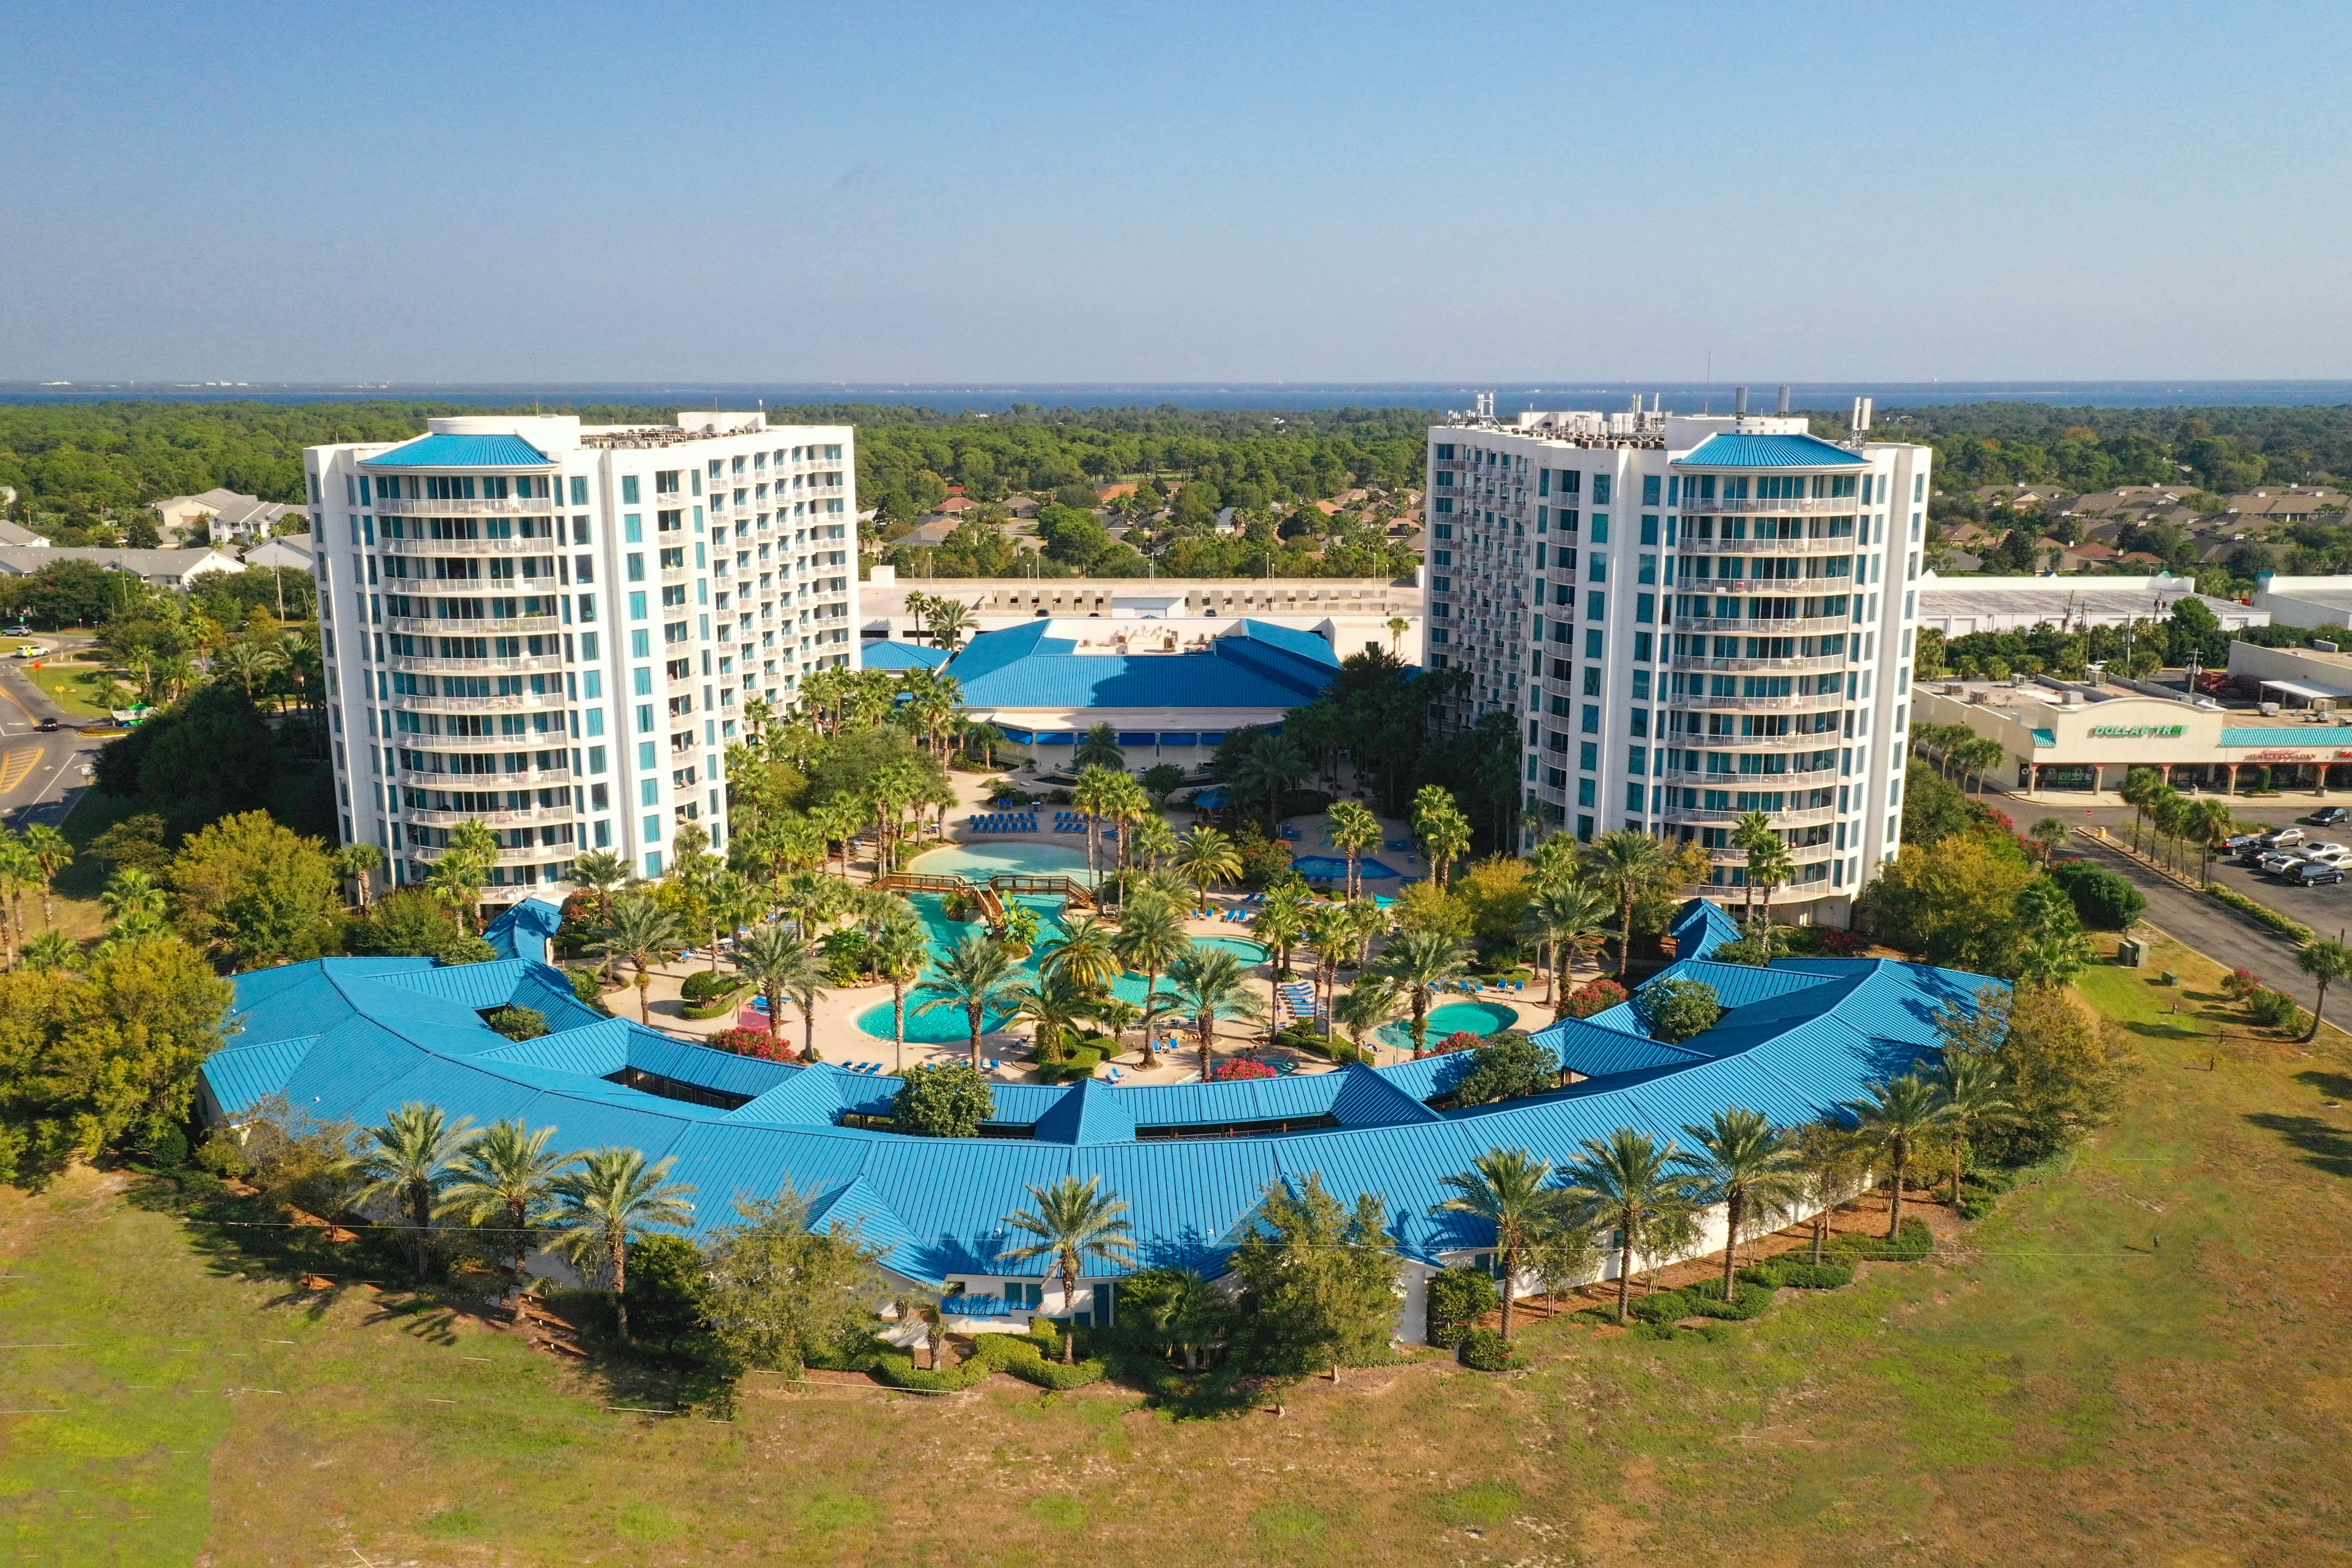 The Palms of Destin Resort is within walking distance of popular seafood restaurants and less than 1 mile from beautiful Henderson Beach State Park.